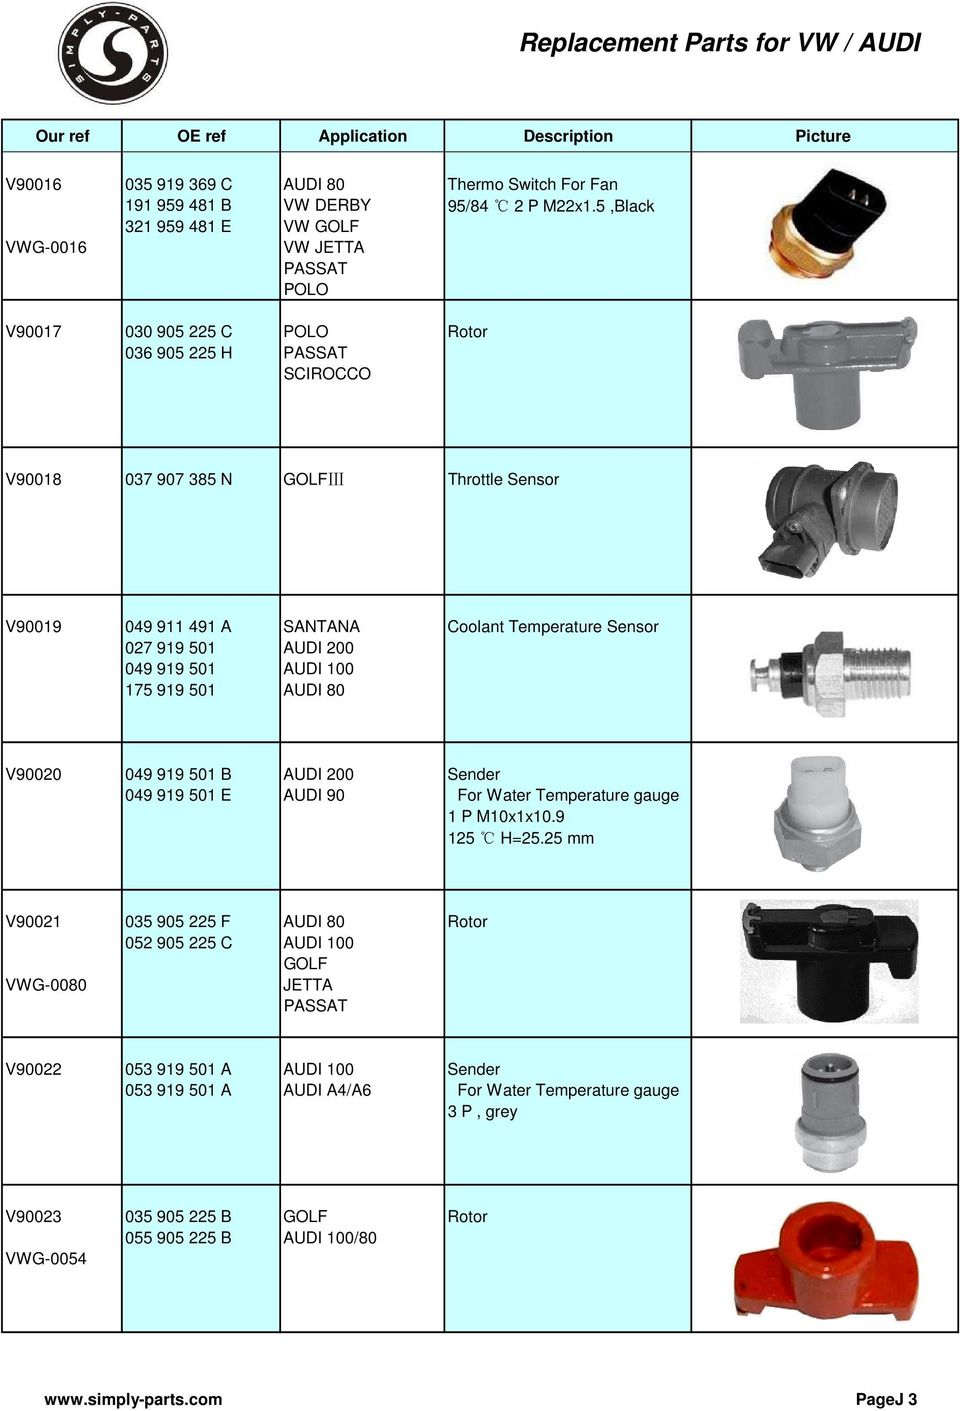 Replacement Parts for VW / AUDI - PDF